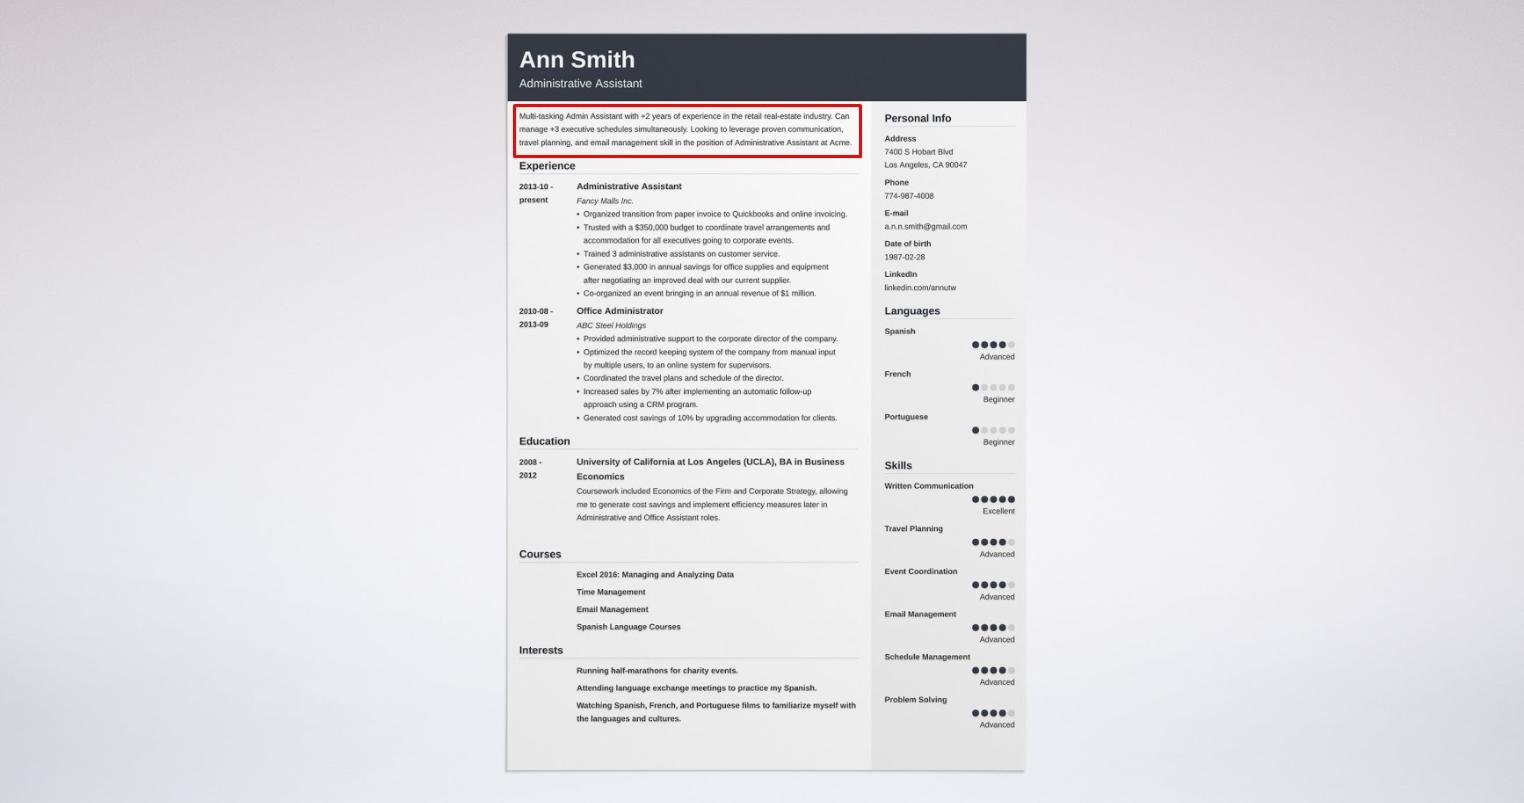 How to Choose the Best Resume Layout (Templates & Examples)